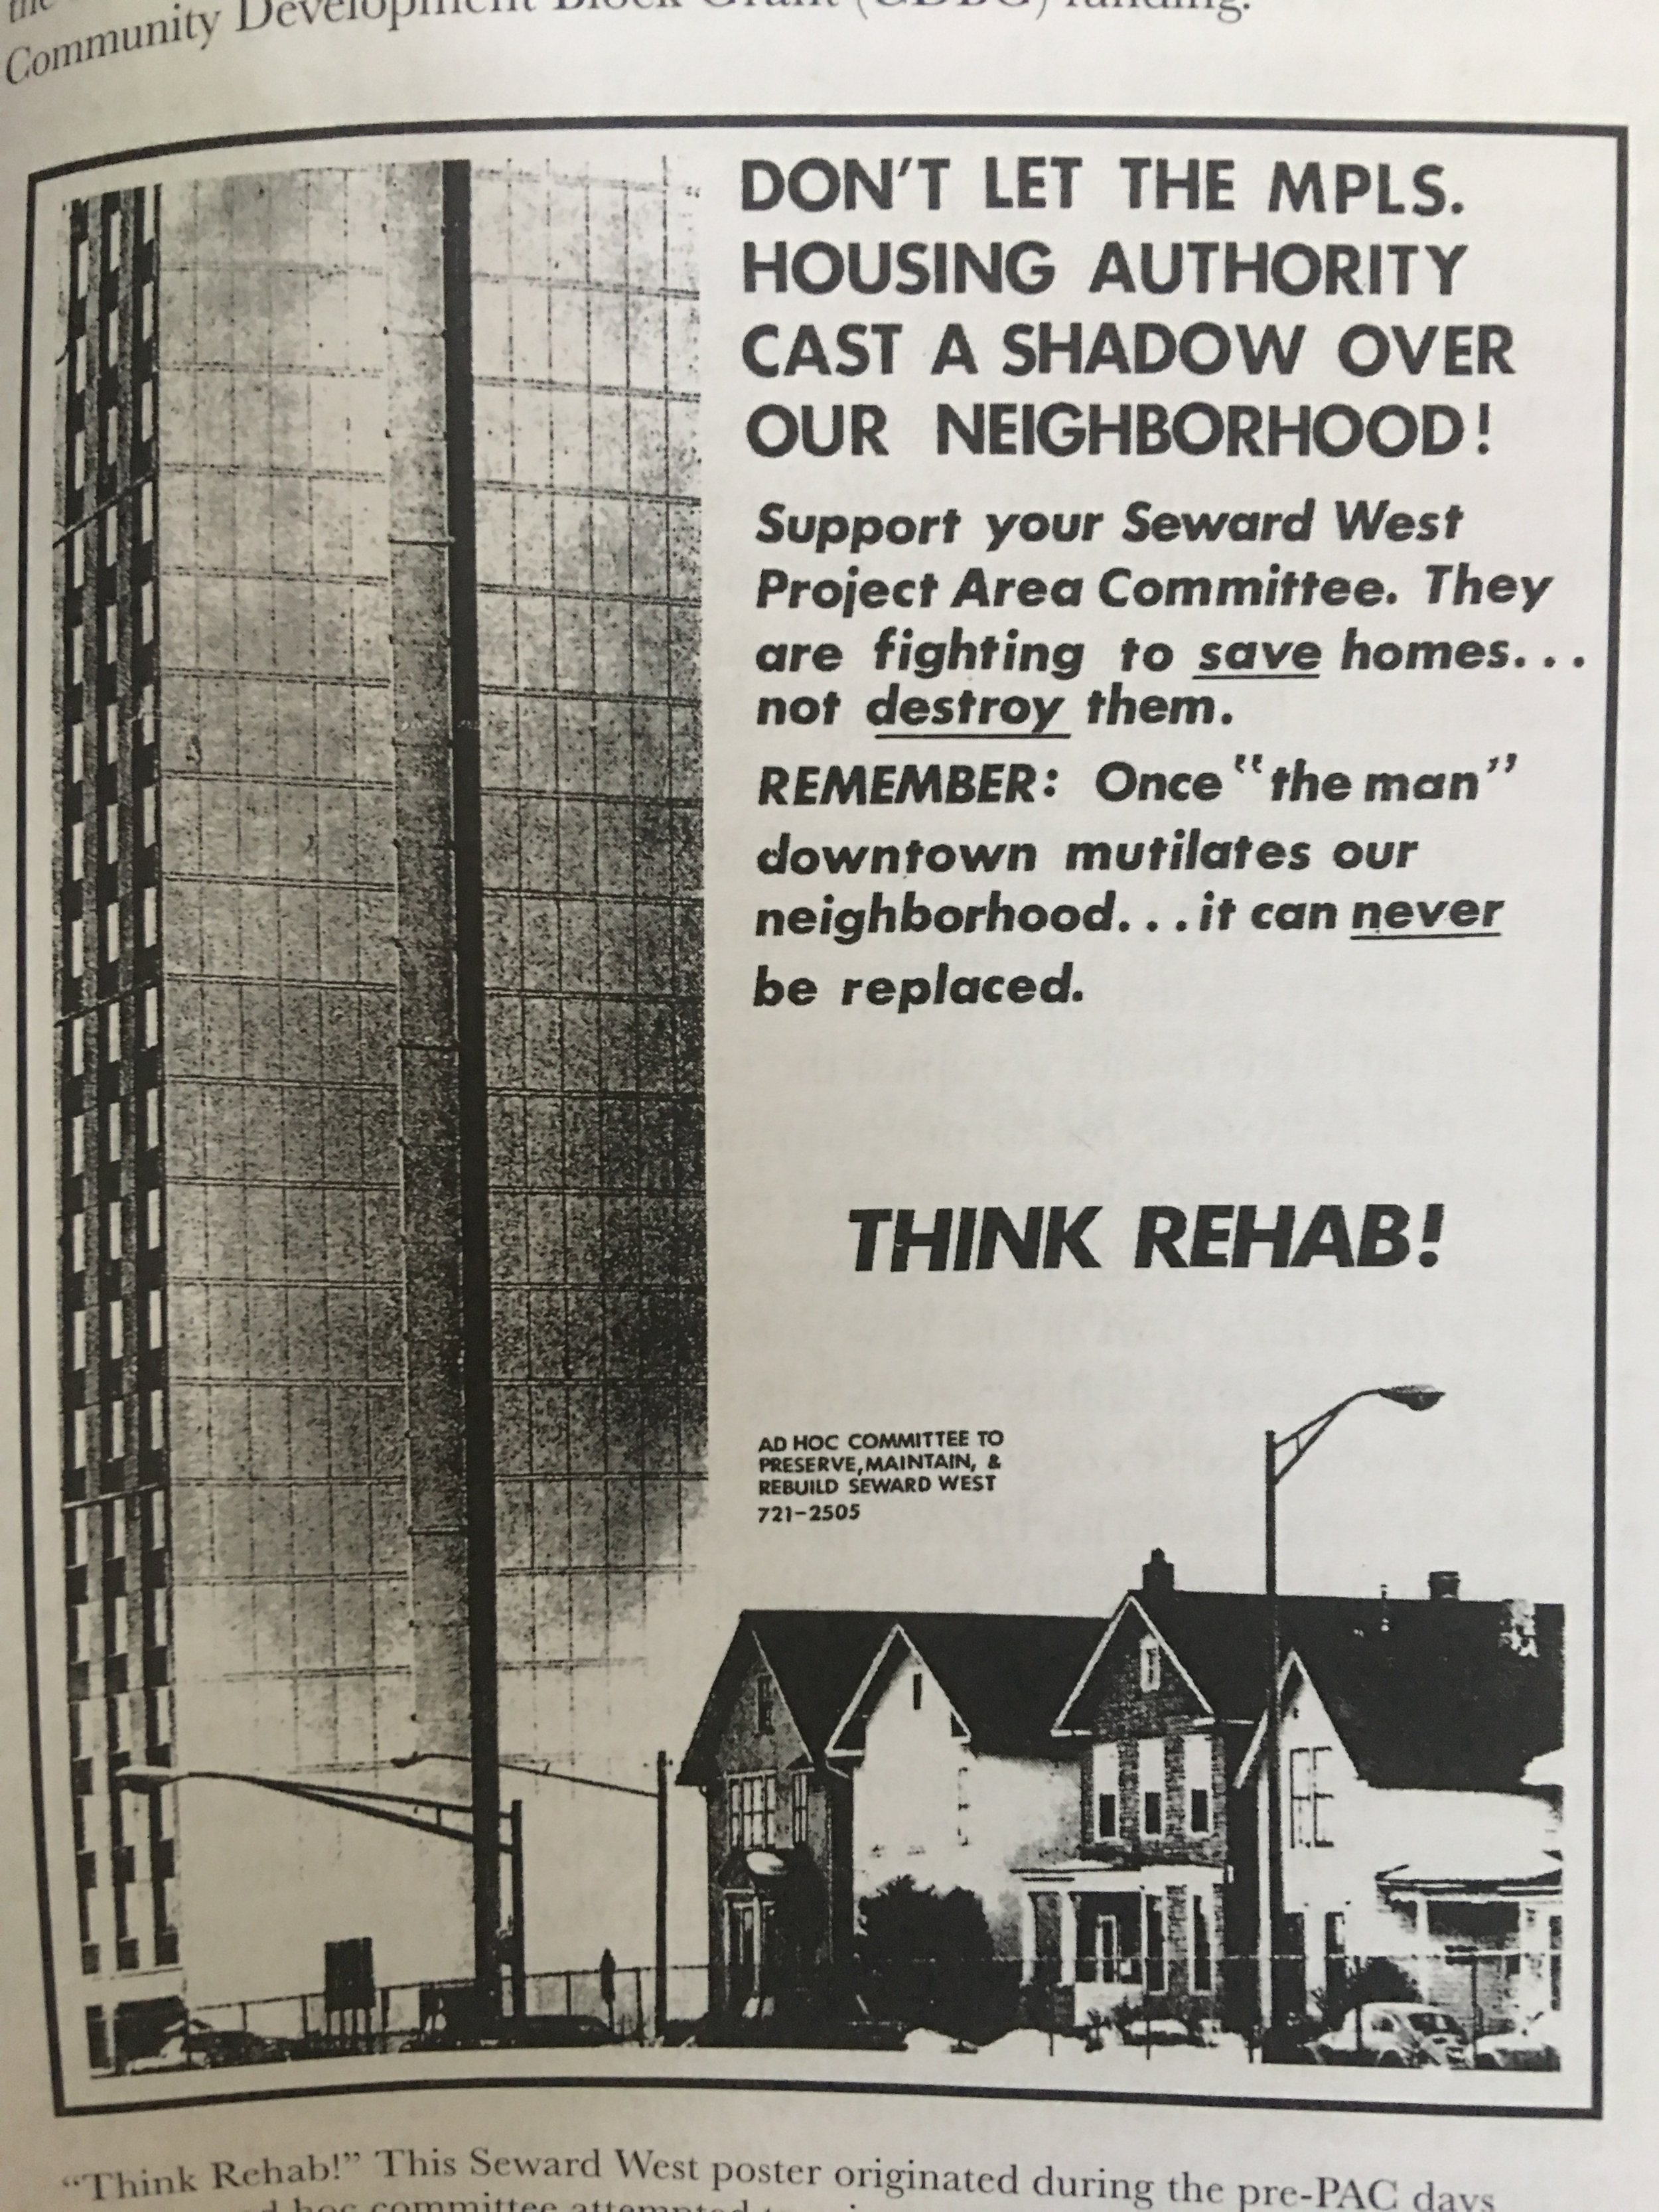 One of the flyers created to fight demolition of the neighborhood (image from the book)